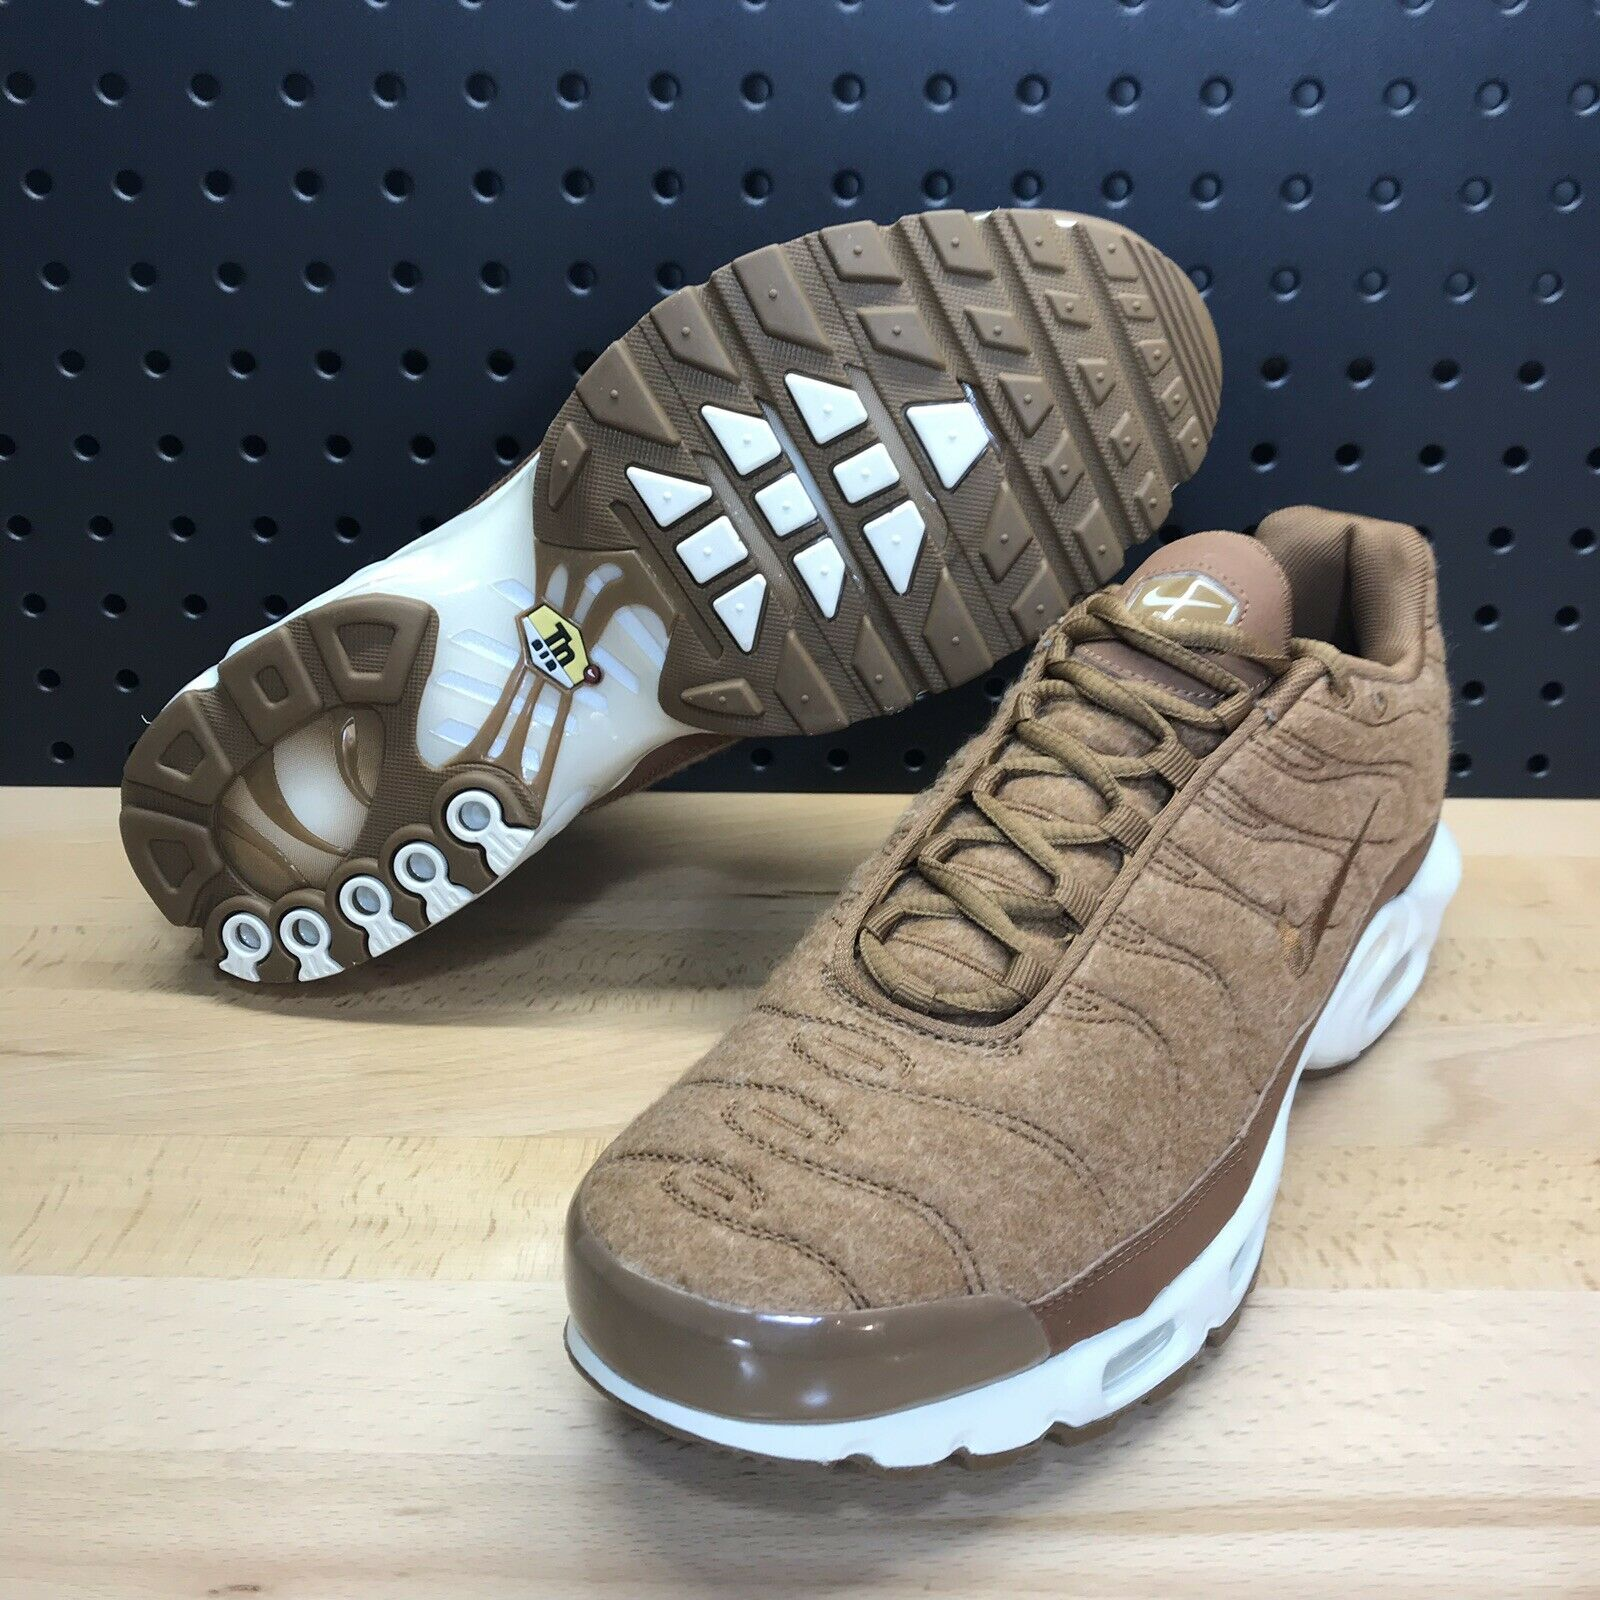 Nike Air Max Plus TN Quilted Ale Brown Wheat Men's Size 8.5